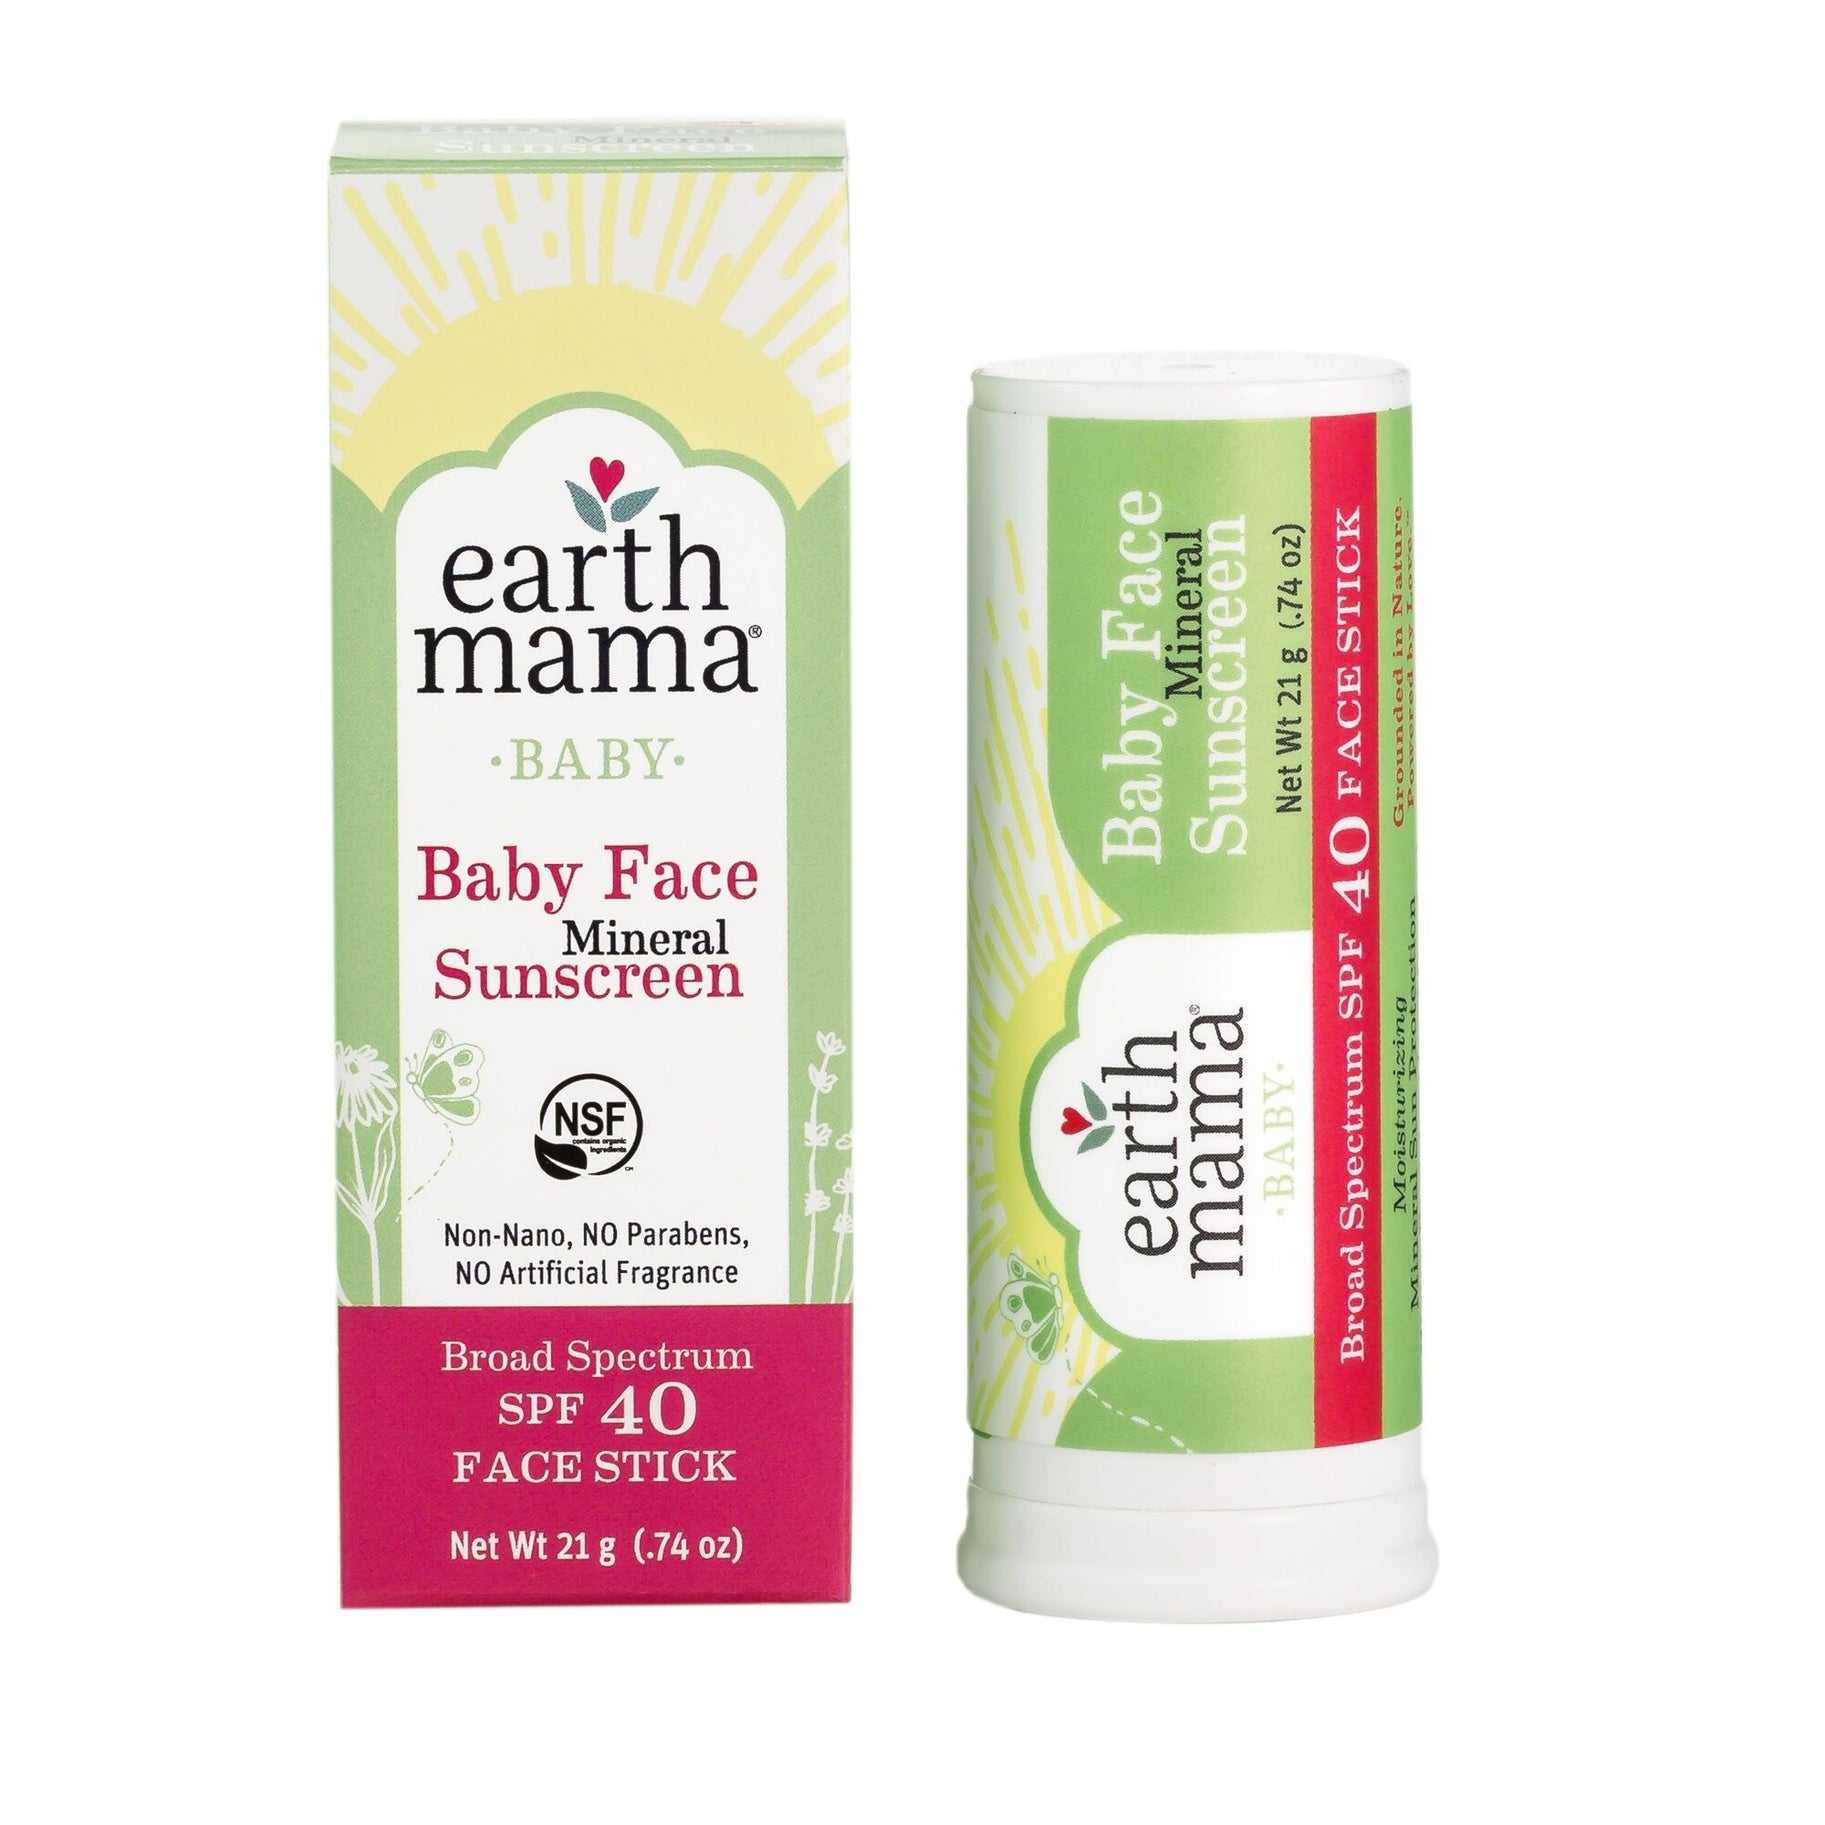 Earth Mama Baby Face Mineral Sunscreen Face Stick